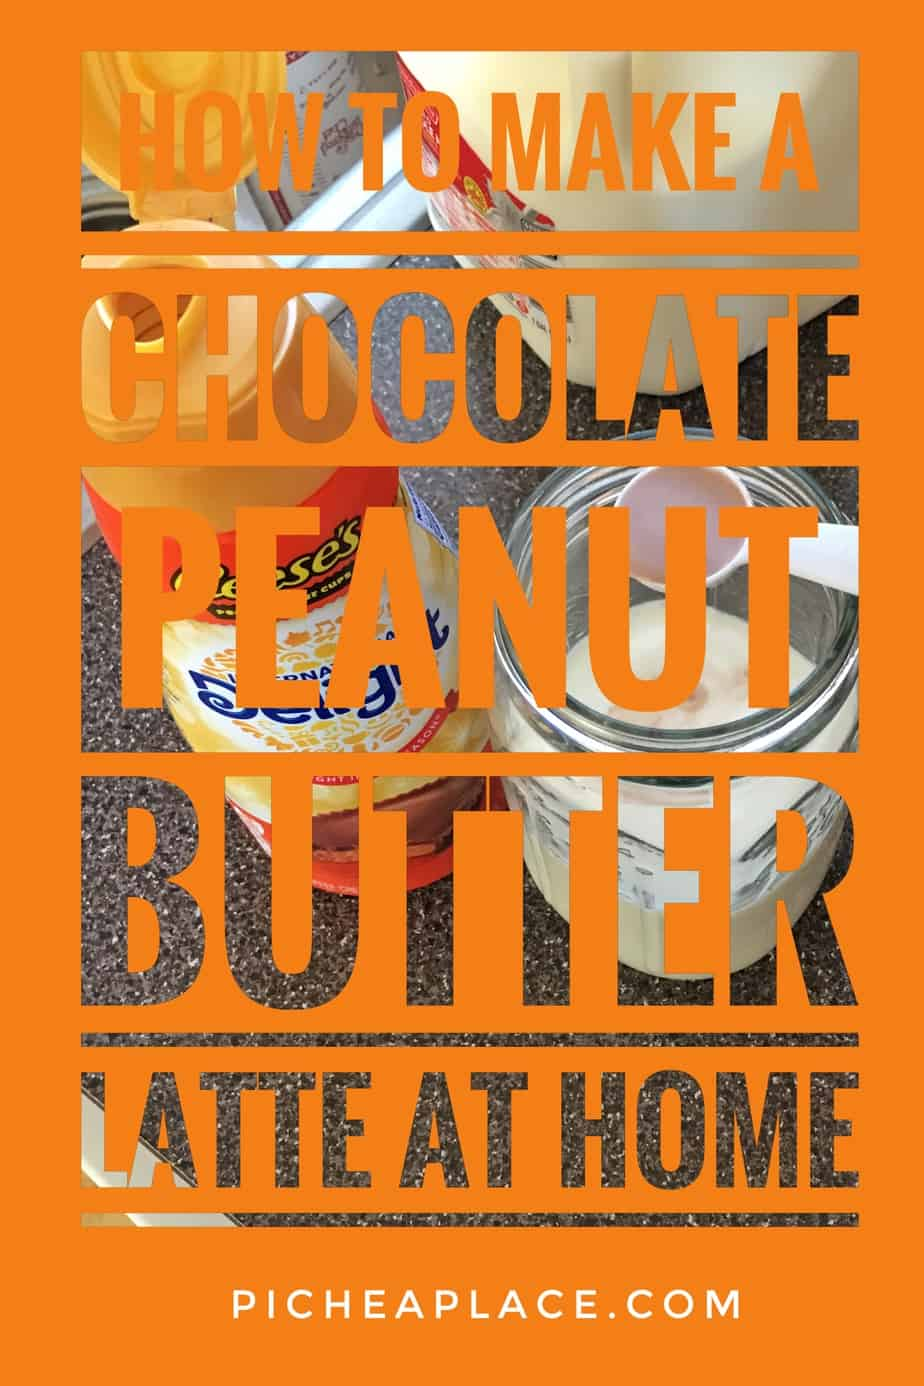 How to Make a Chocolate Peanut Butter Latte at Home